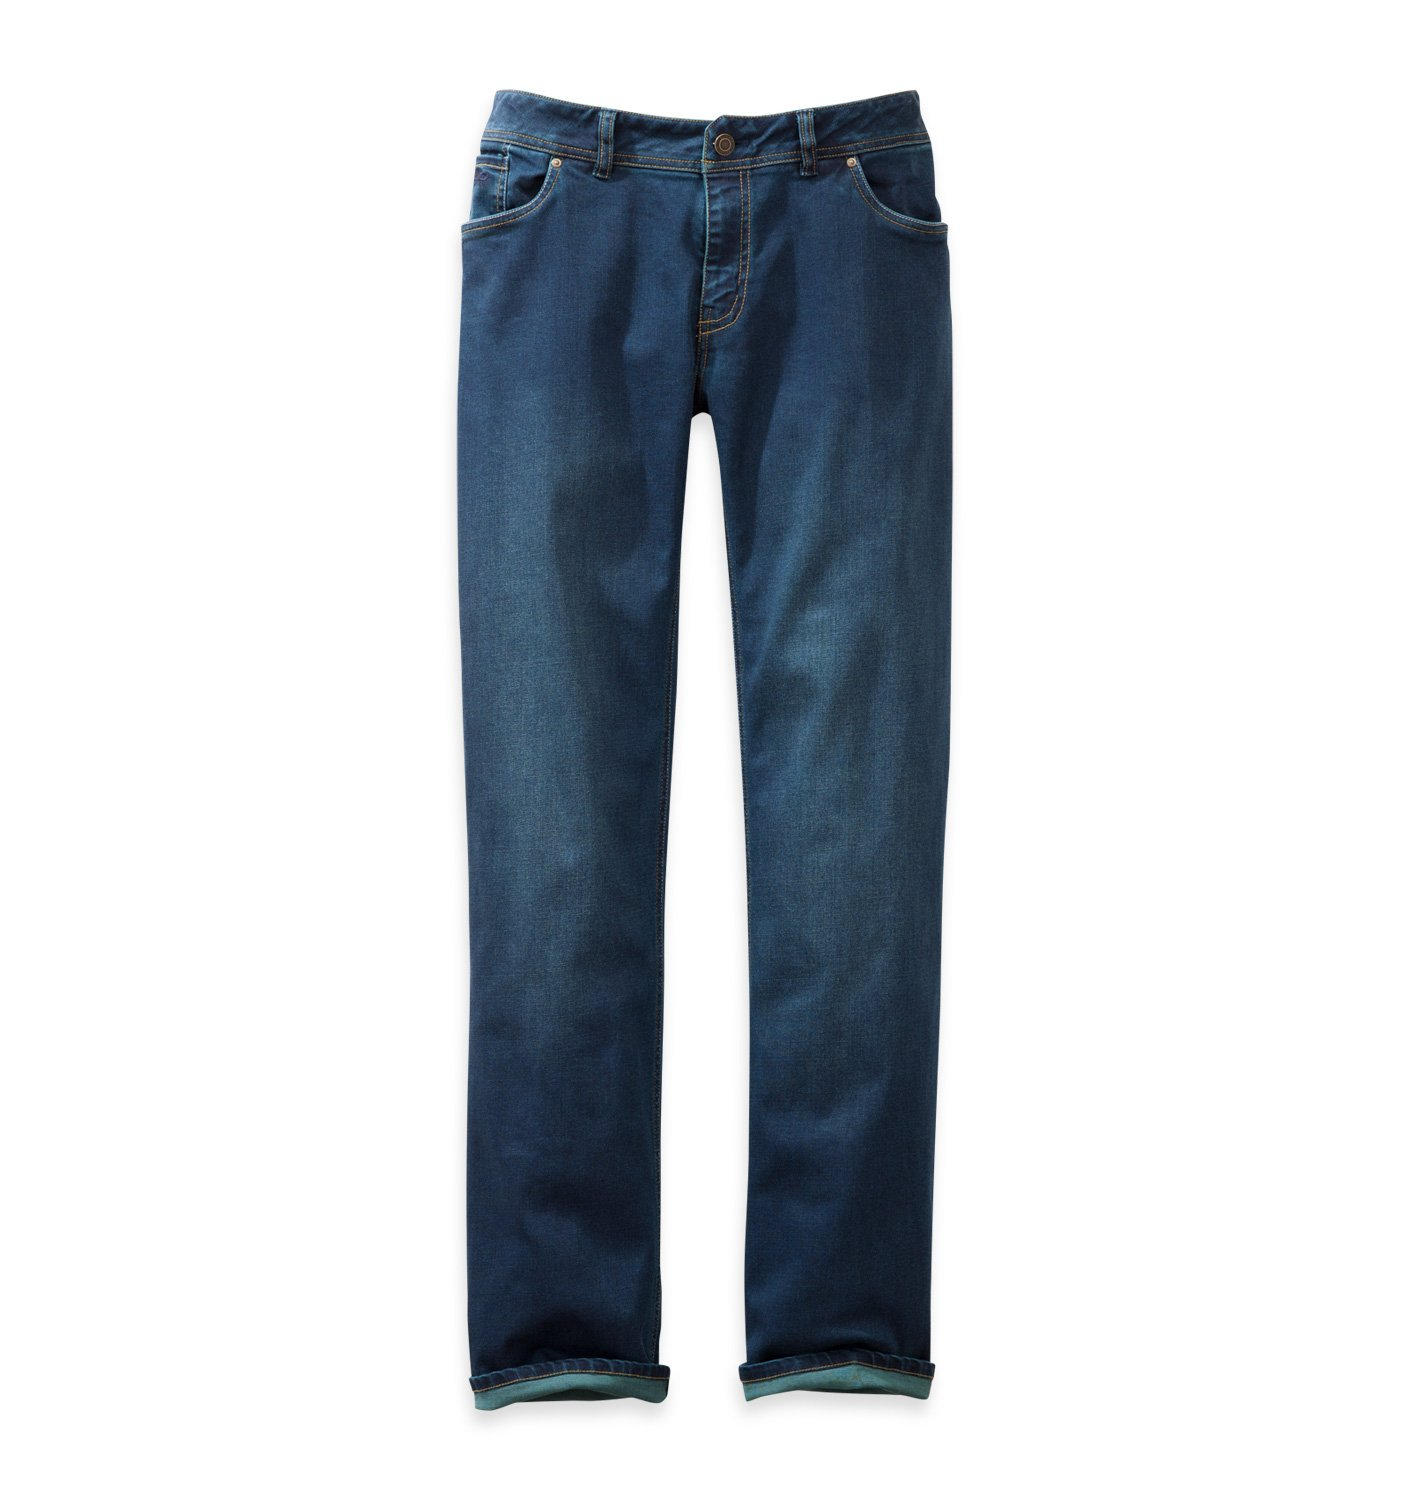 Outdoor Research Nantina Damens's Jeans